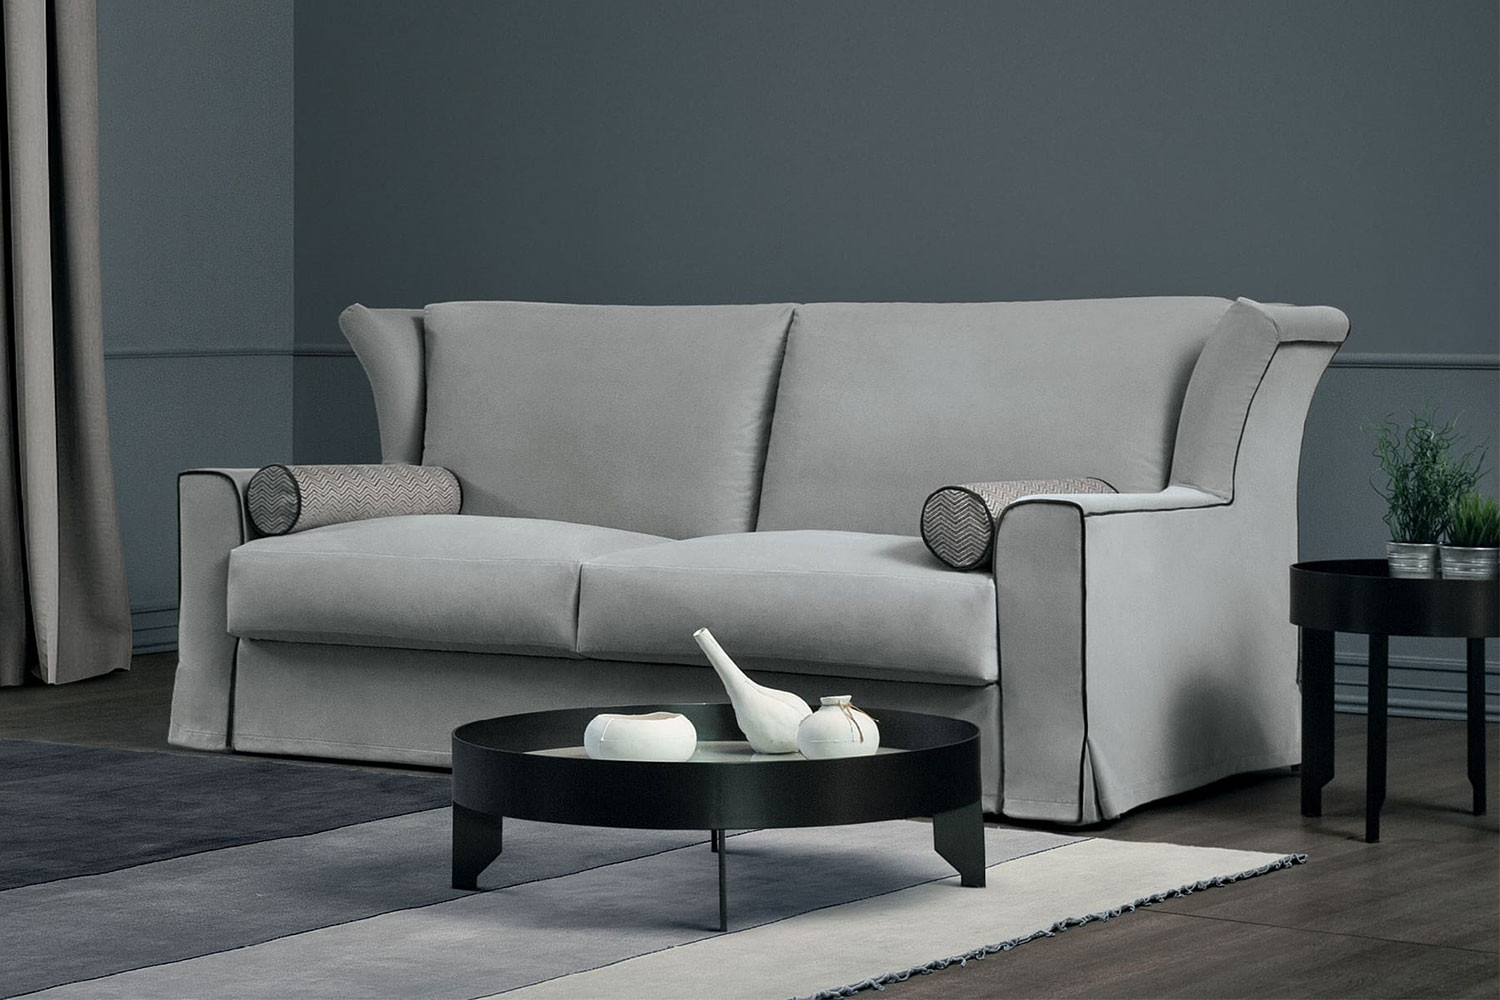 2, 3 seater traditional sofa bed with a modern wingback design and a kick pleat skirt